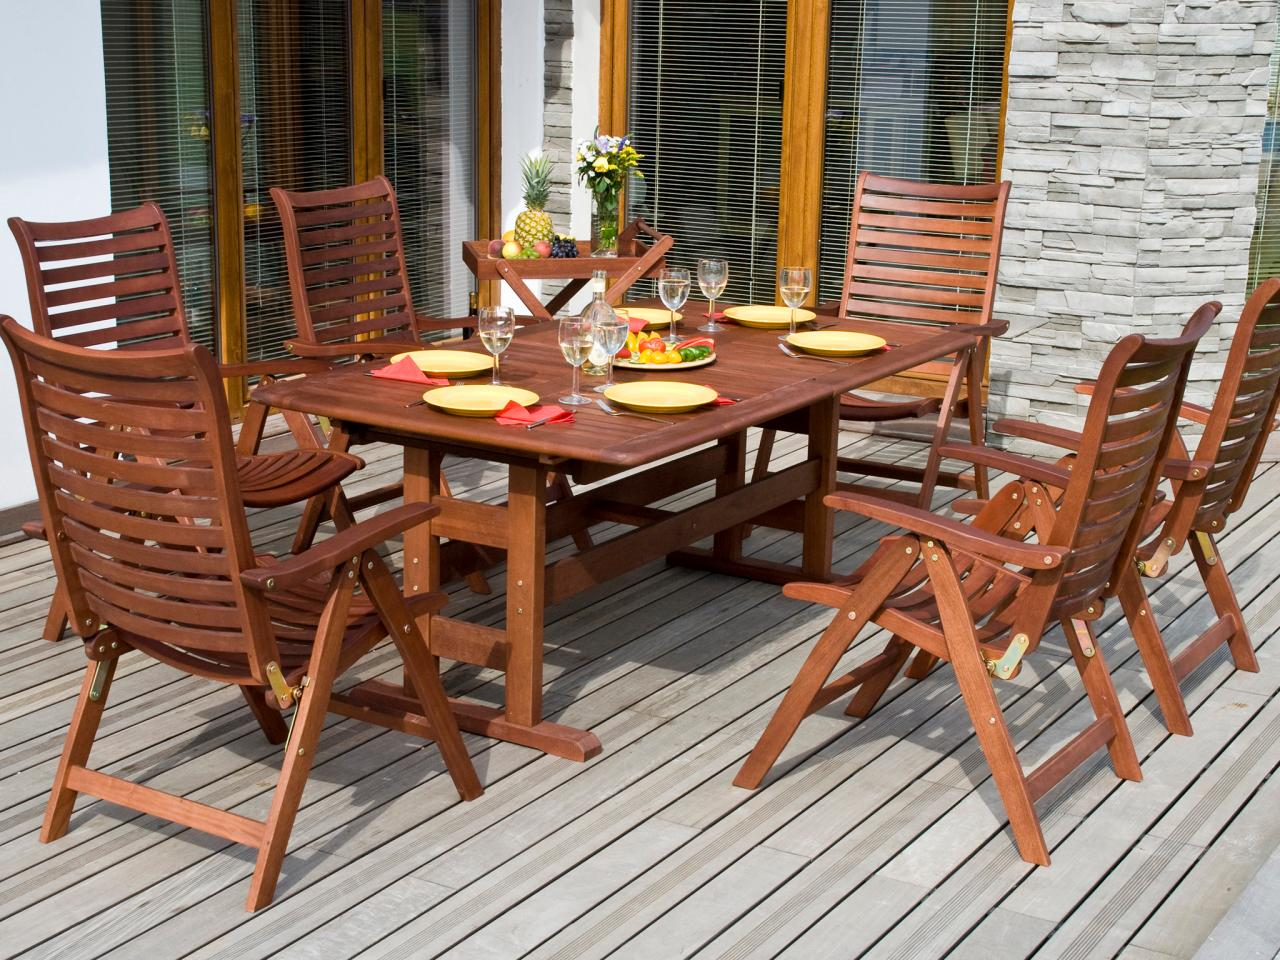 a wooden table for outdoor use